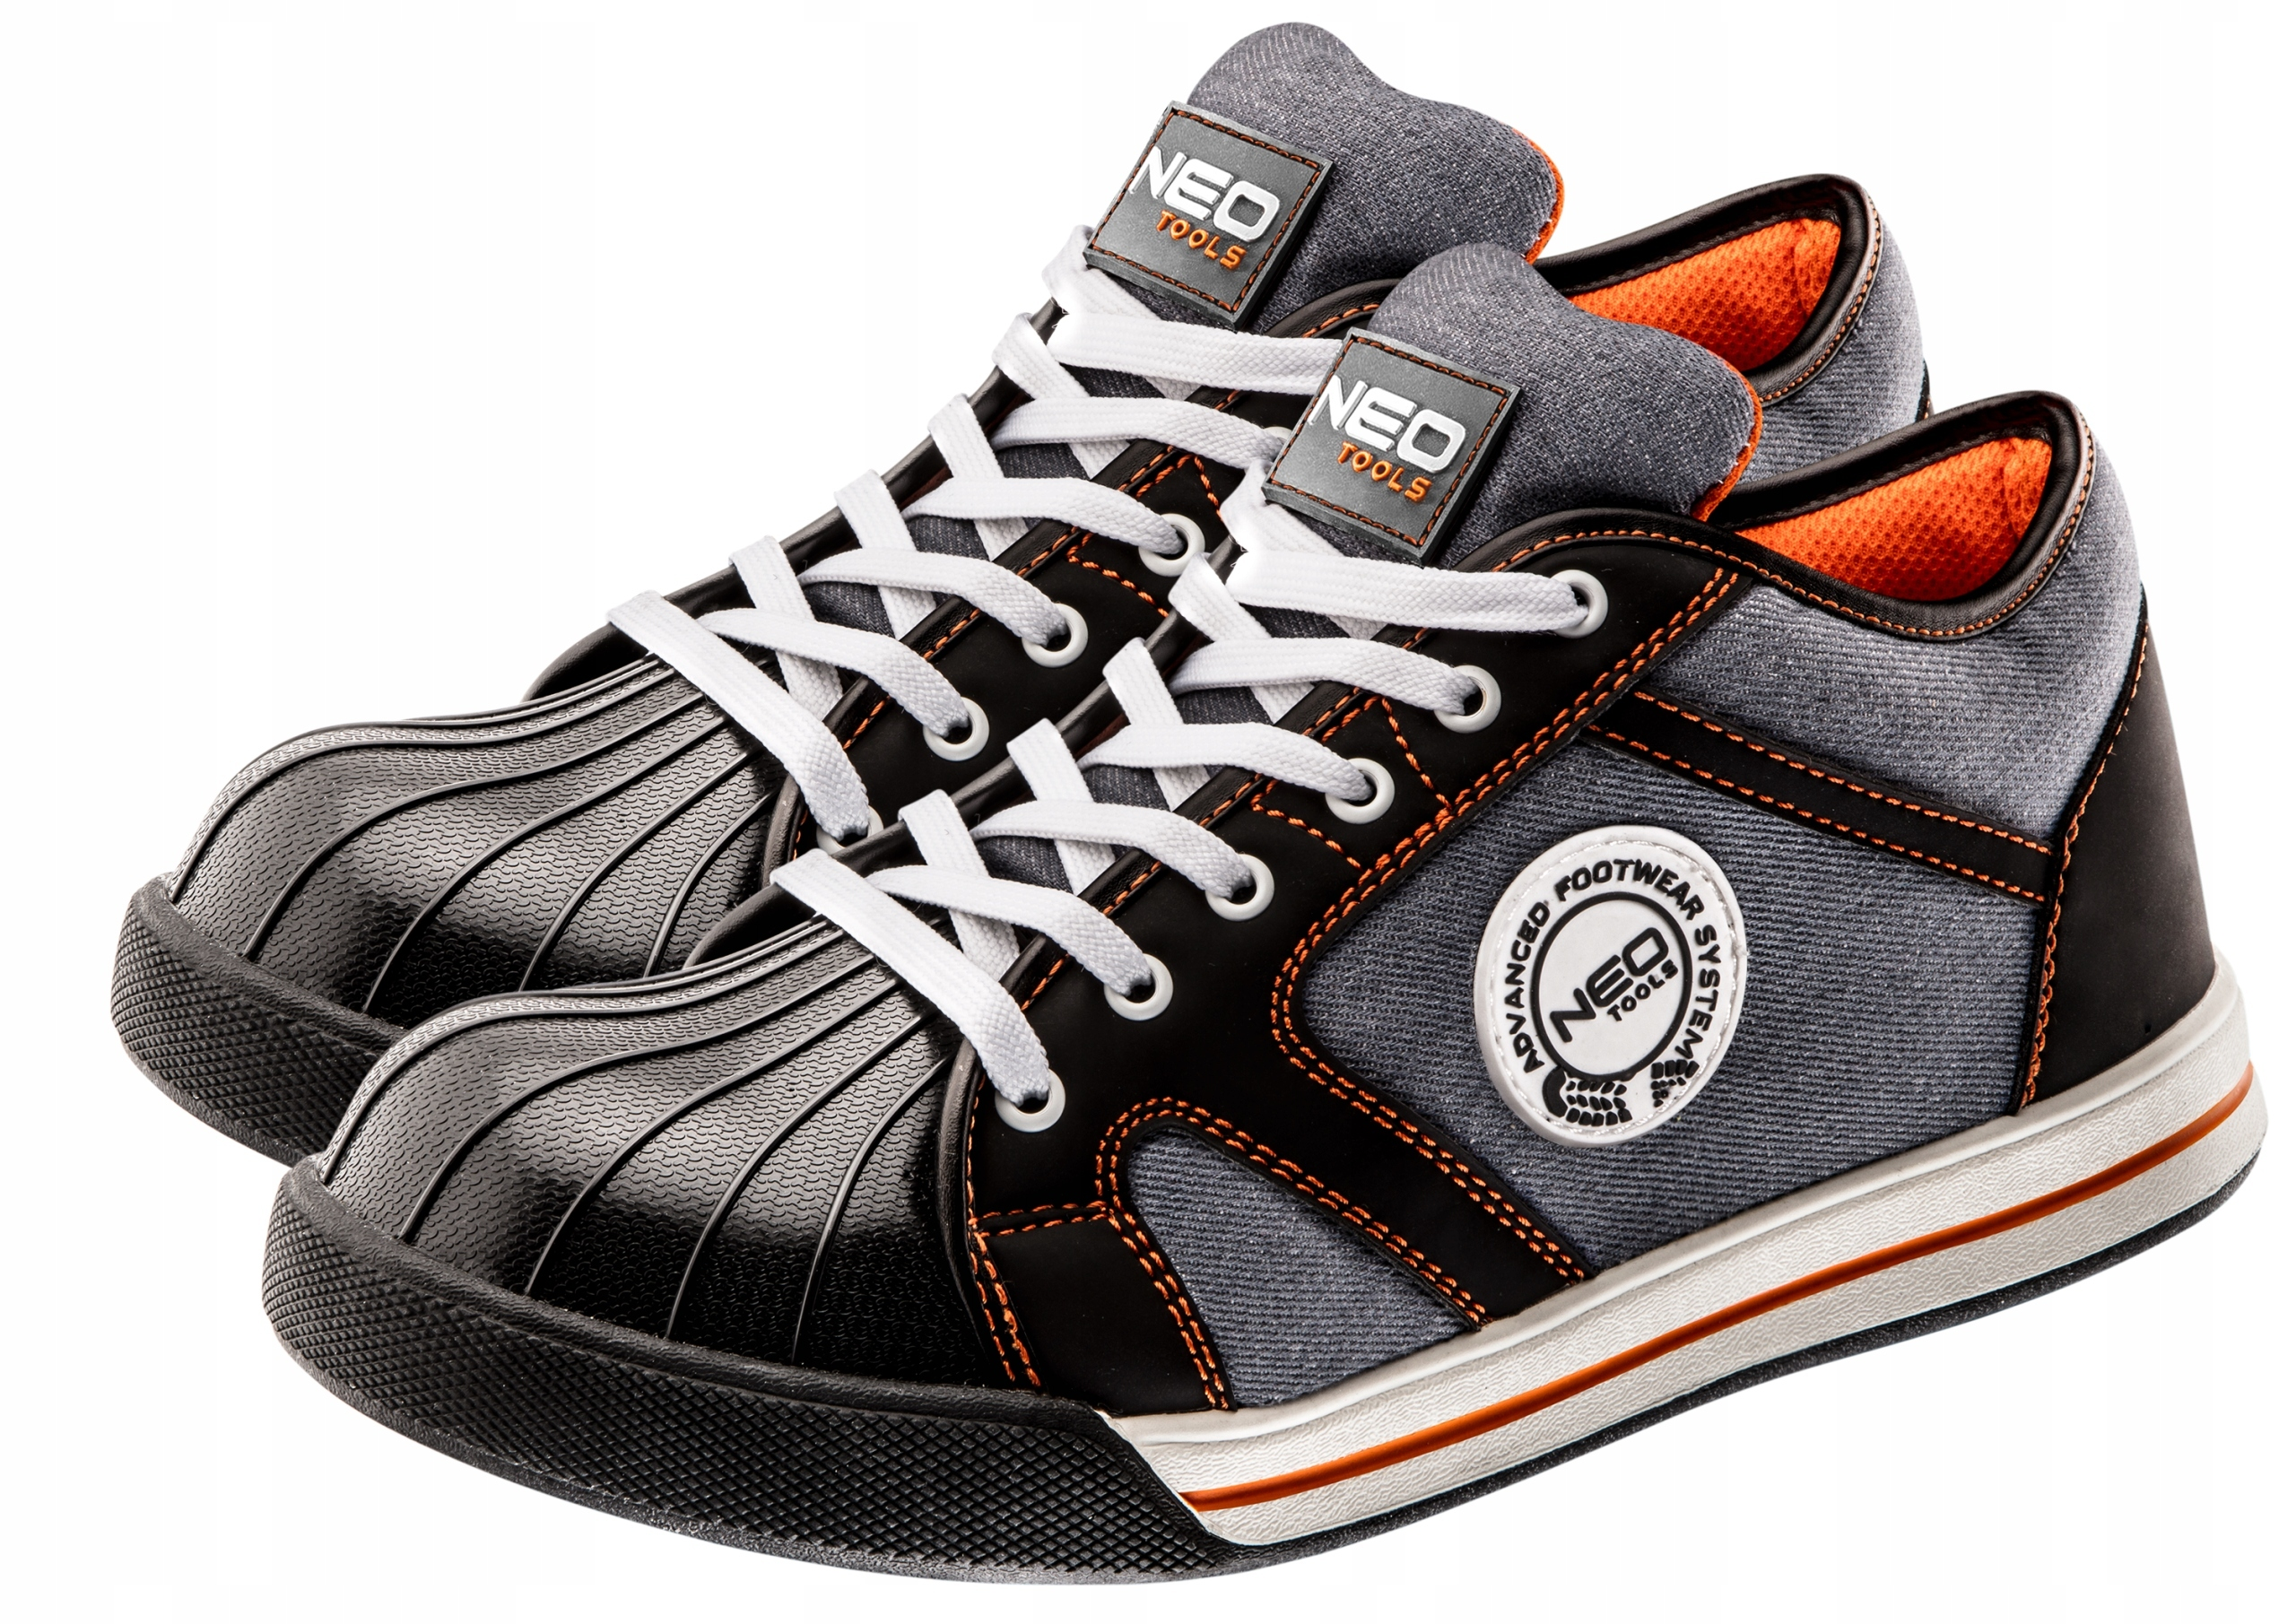 NEO SHOES WORK SHOES METAL SNEAKERS 82-115 r 44